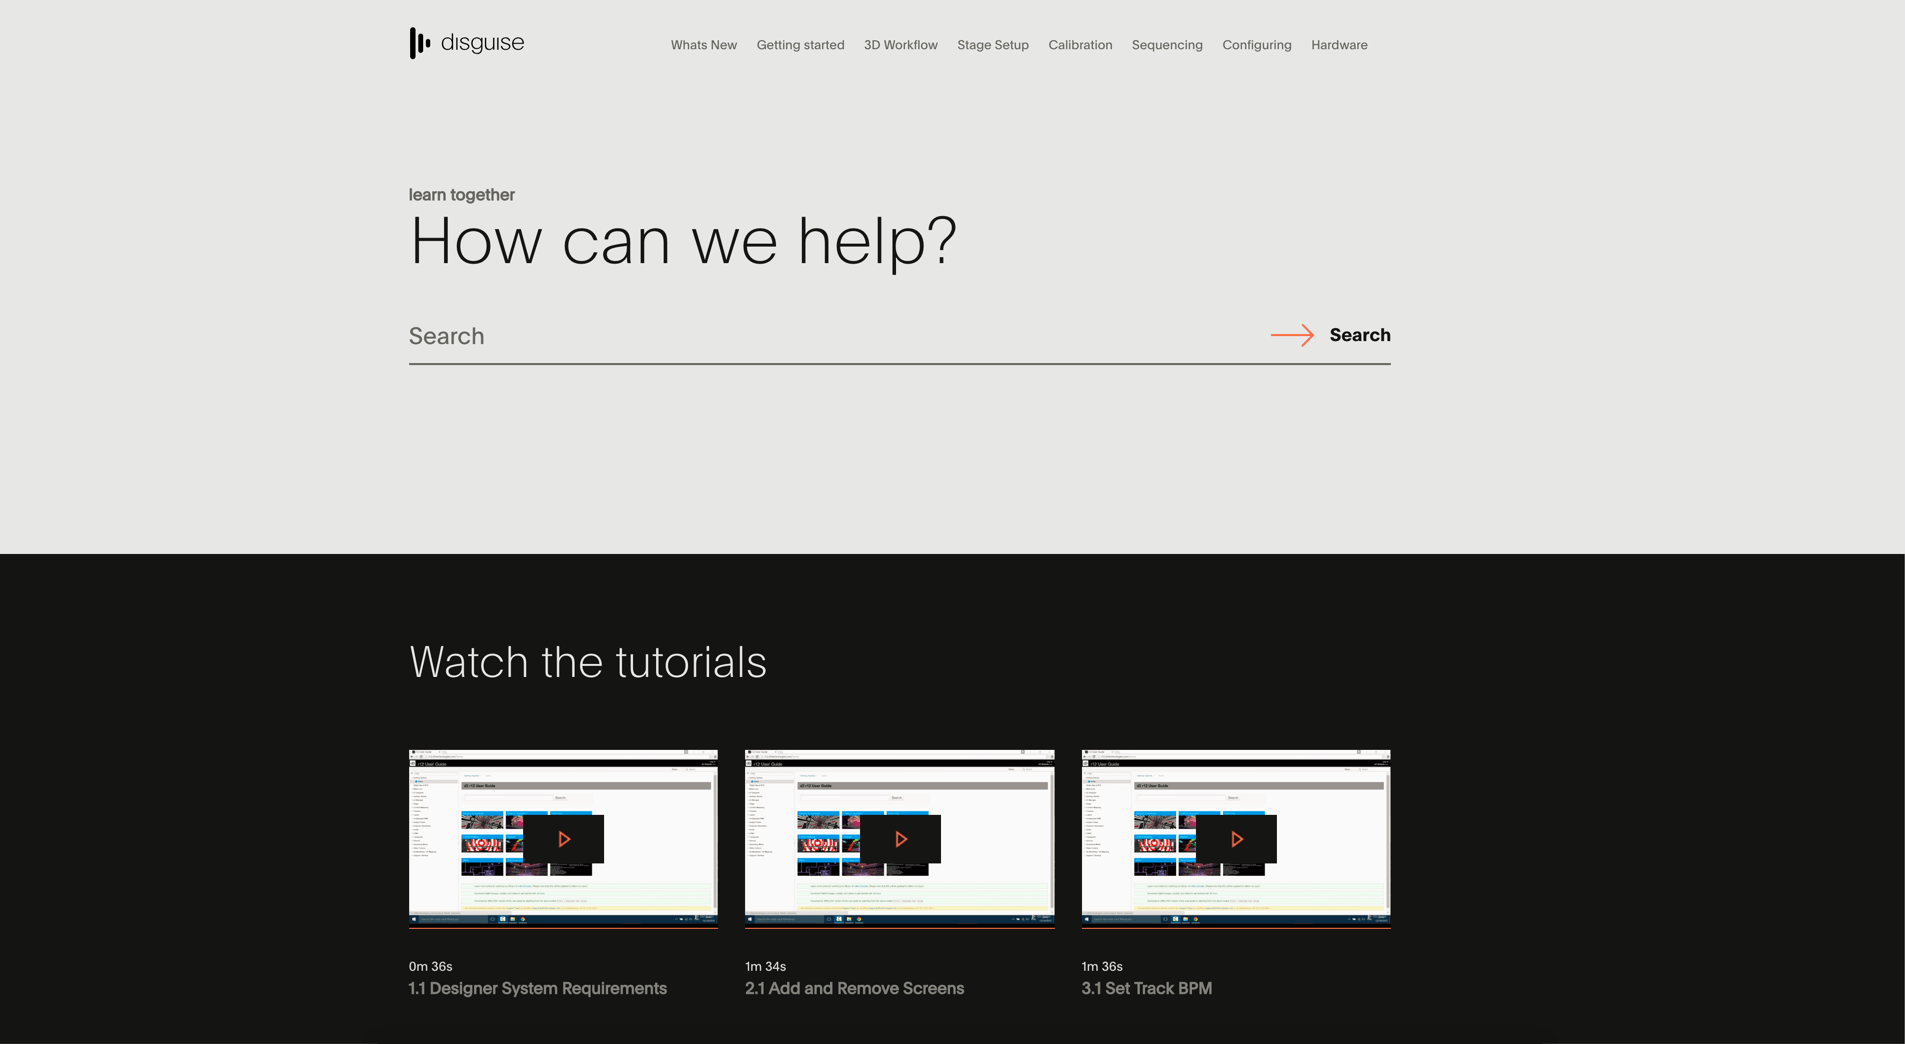 Screenshot of Home Page of disguise one's HTML5-based Help Site